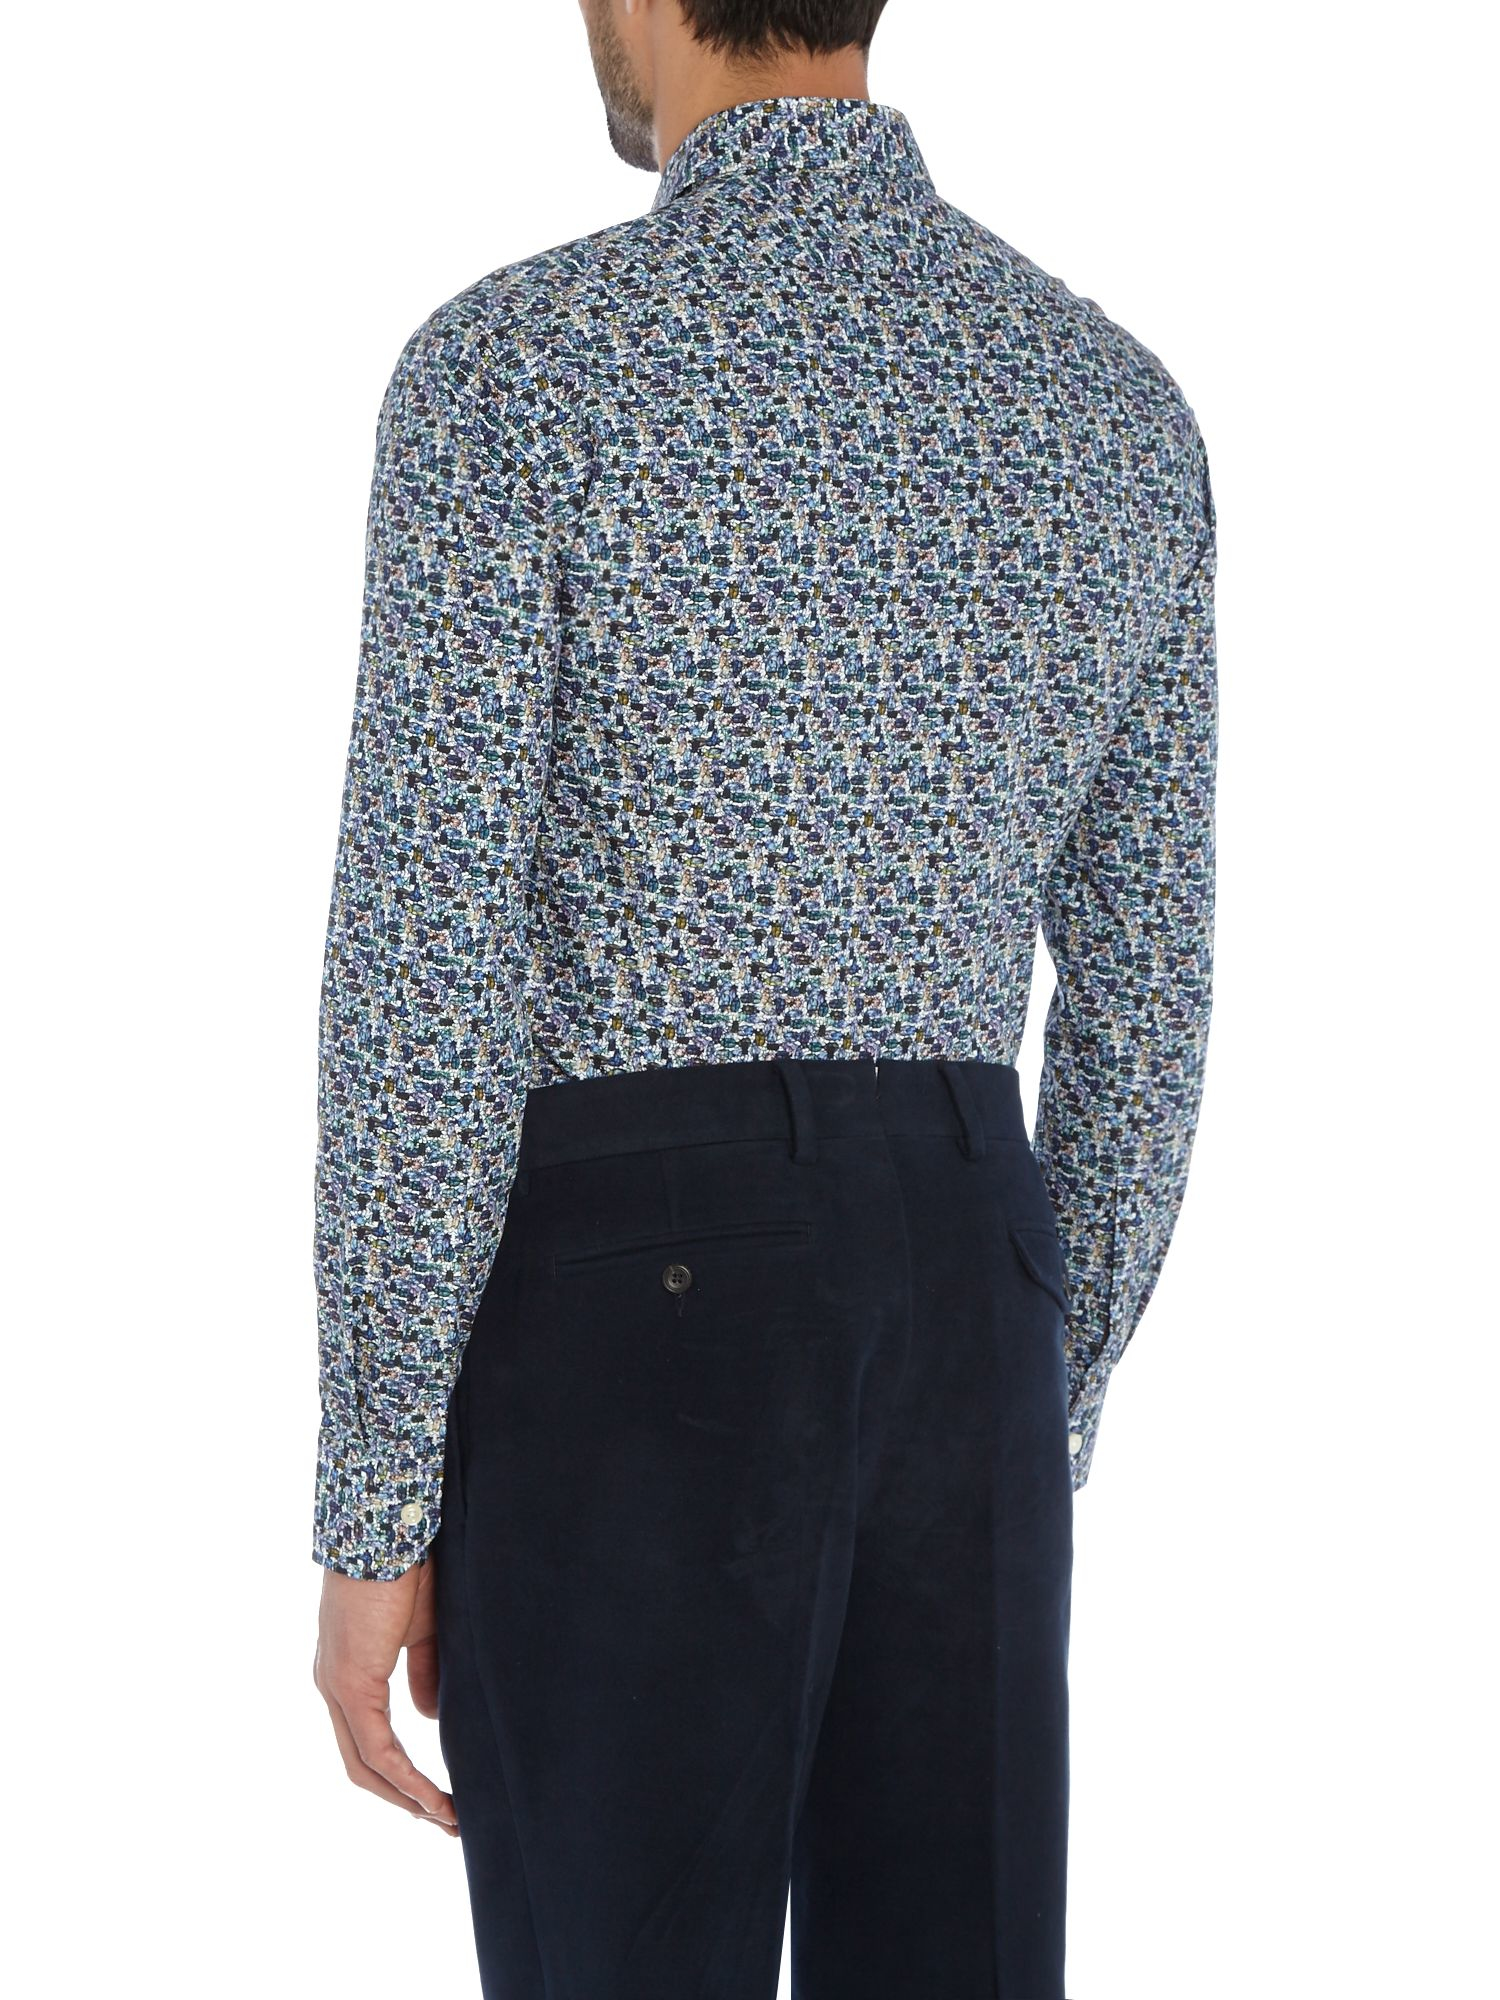 Lyst simon carter beetle print shirt in blue for men for Mens dress shirts with cufflink holes